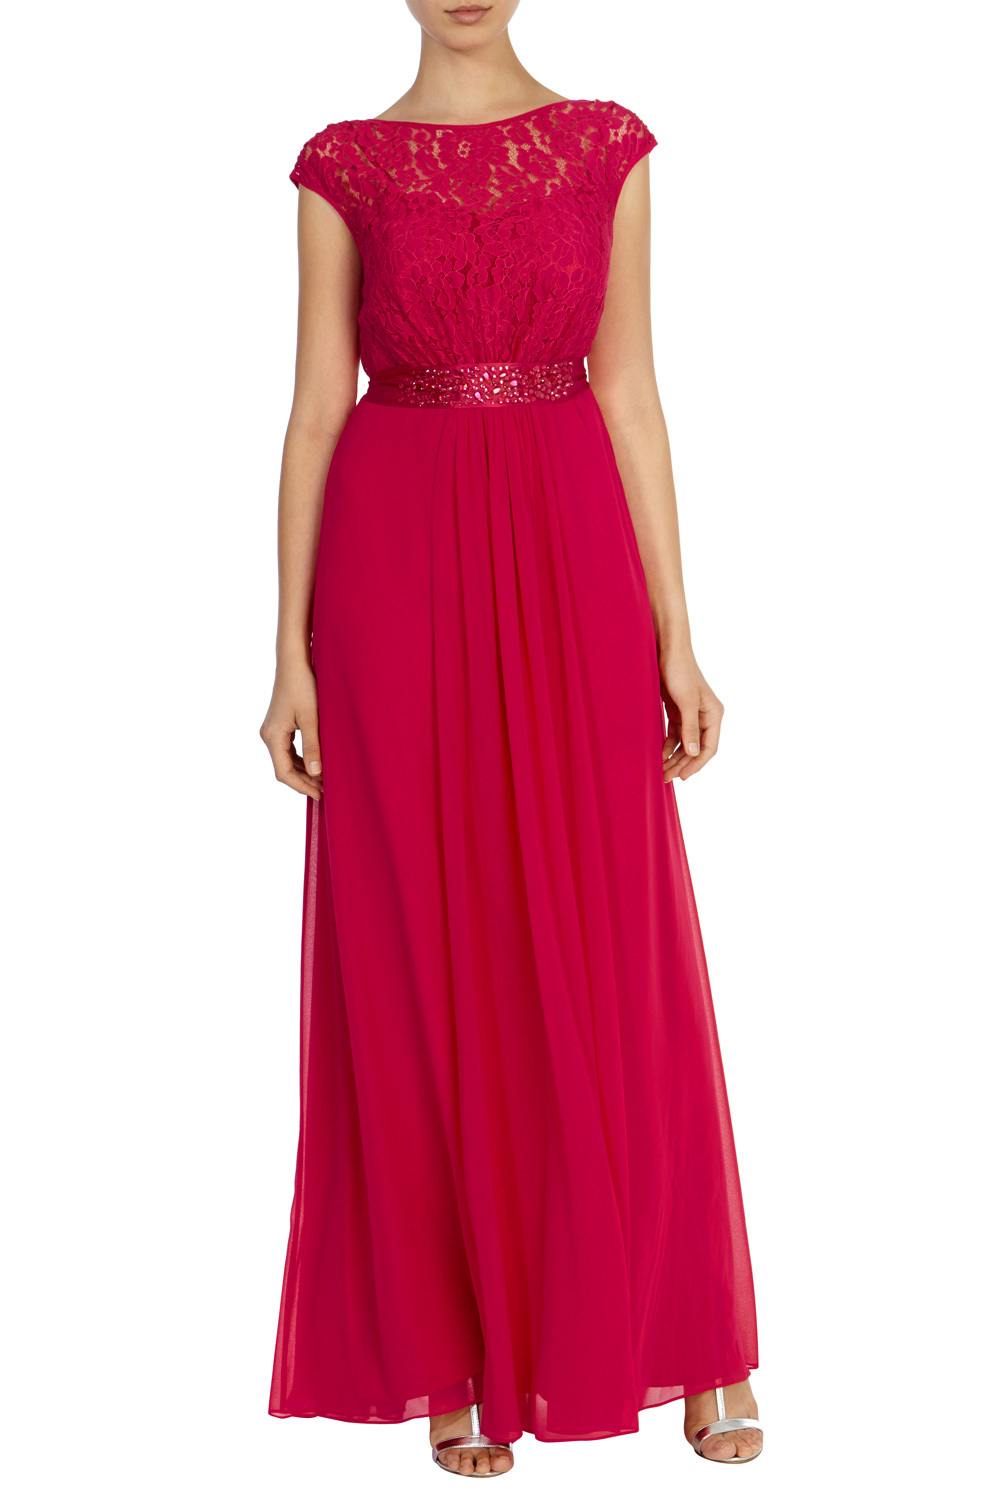 Lori Lee Lace Maxi Dress Sl - sleeve style: capped; pattern: plain; style: maxi dress; bust detail: sheer at bust; predominant colour: true red; occasions: evening; length: floor length; fit: body skimming; fibres: polyester/polyamide - 100%; neckline: crew; sleeve length: short sleeve; pattern type: fabric; texture group: jersey - stretchy/drapey; embellishment: lace; season: s/s 2016; wardrobe: event